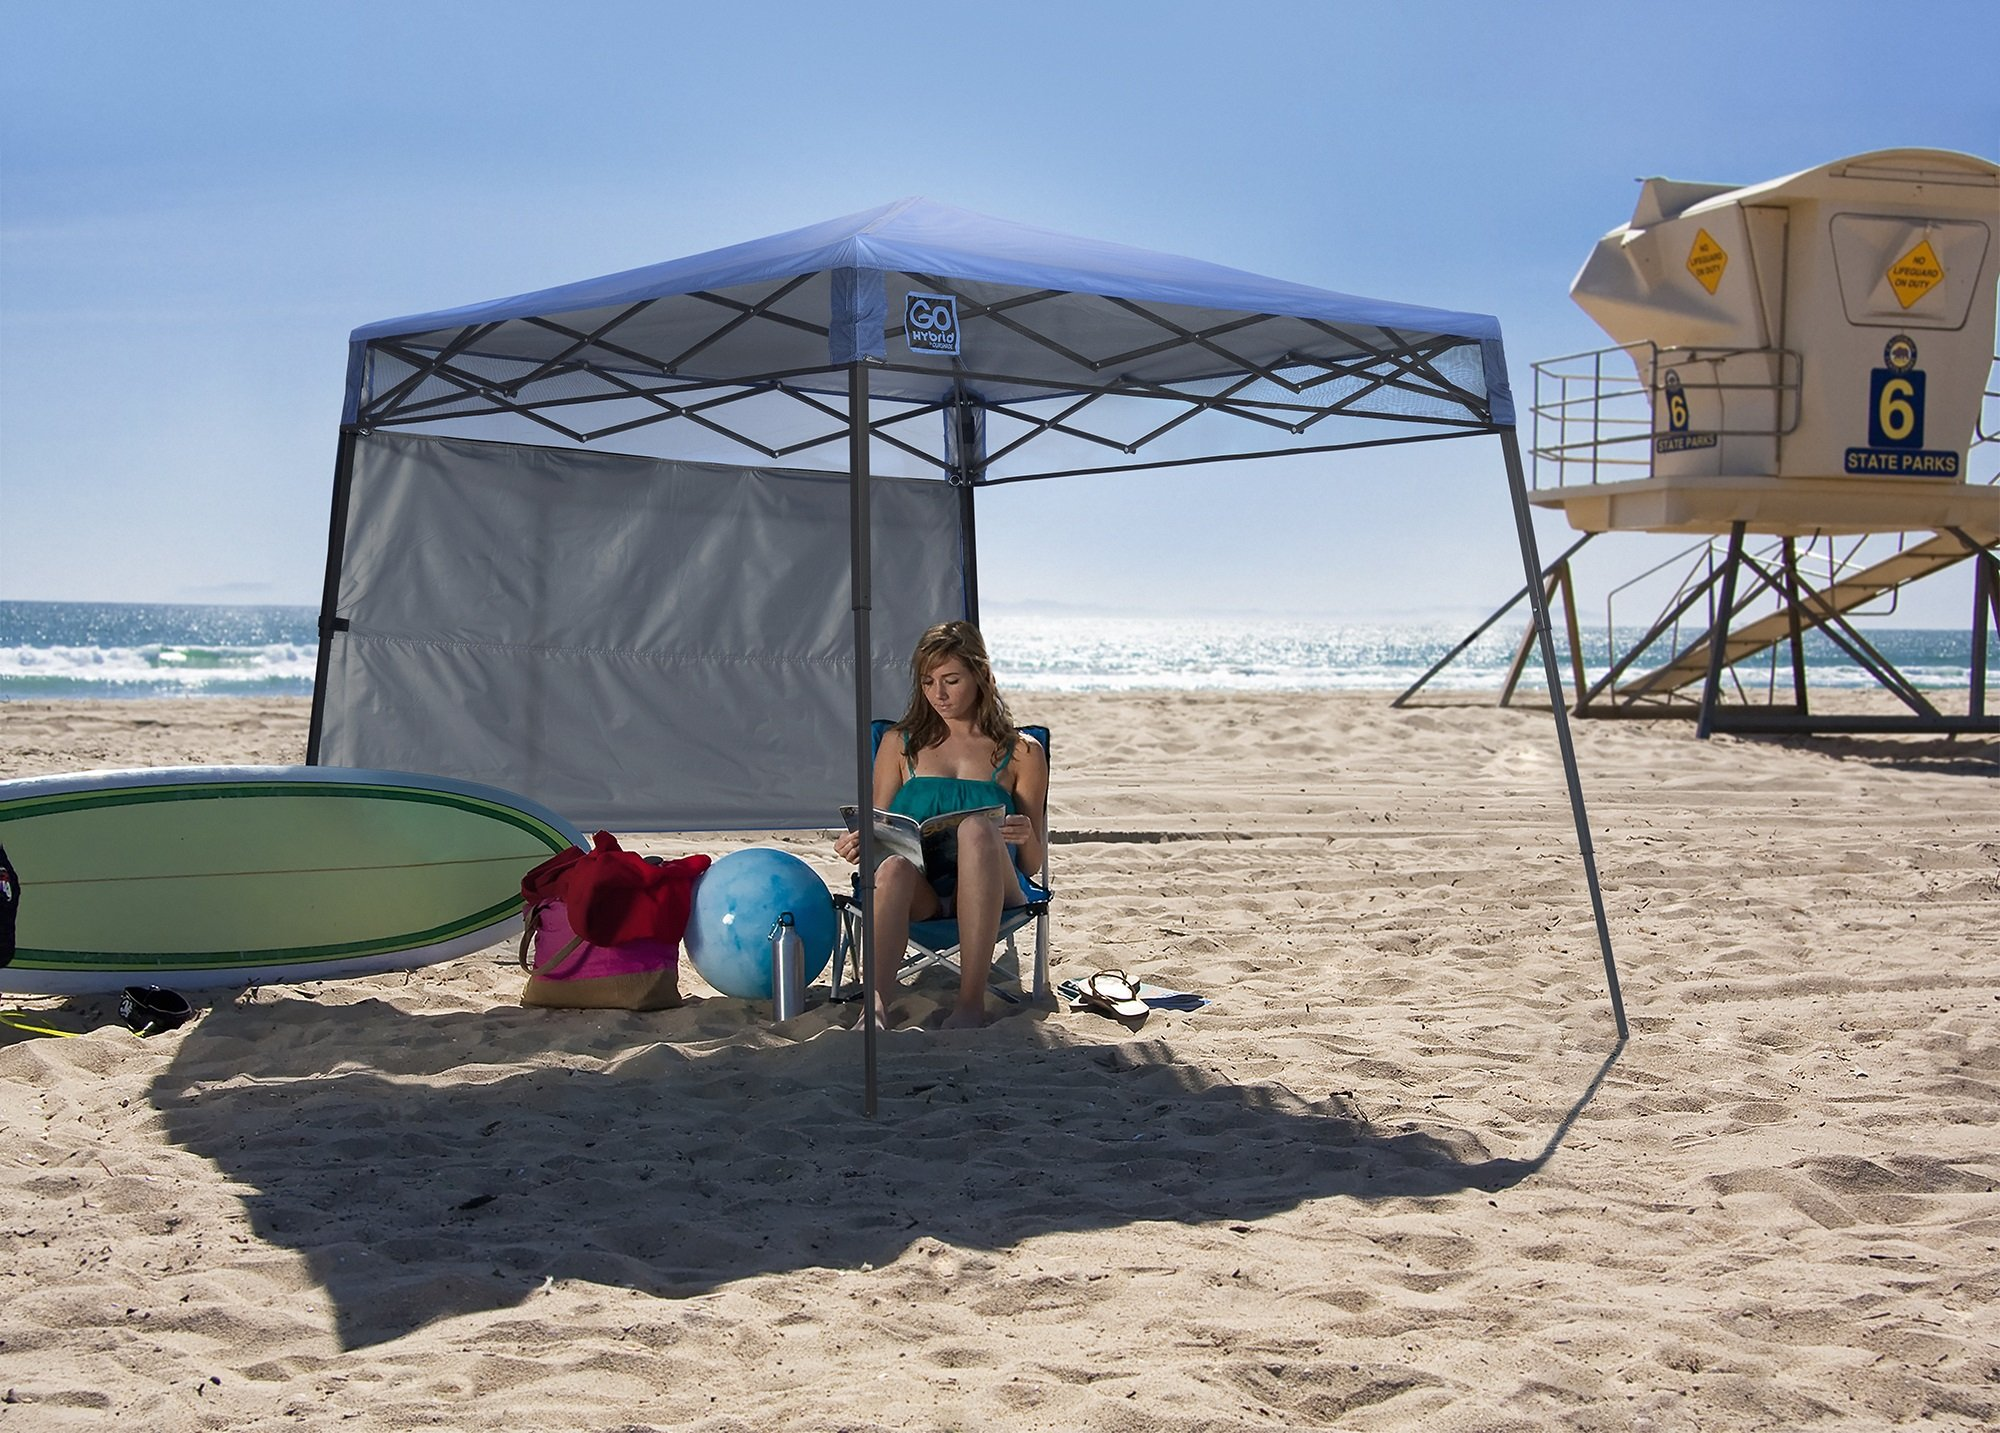 Quik Shade GO Hybrid Compact Slant Leg Backpack Canopy, Blue, 7 x 7-Foot by Quik Shade Pets (Image #8)